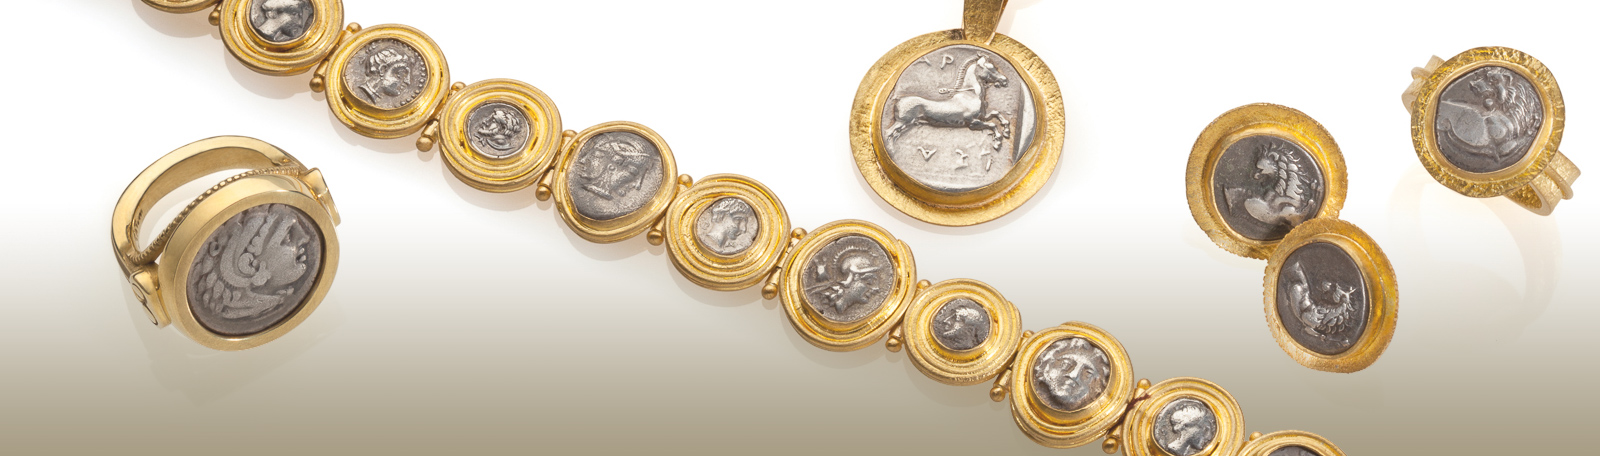 Fairchild Jewelry Slider Image